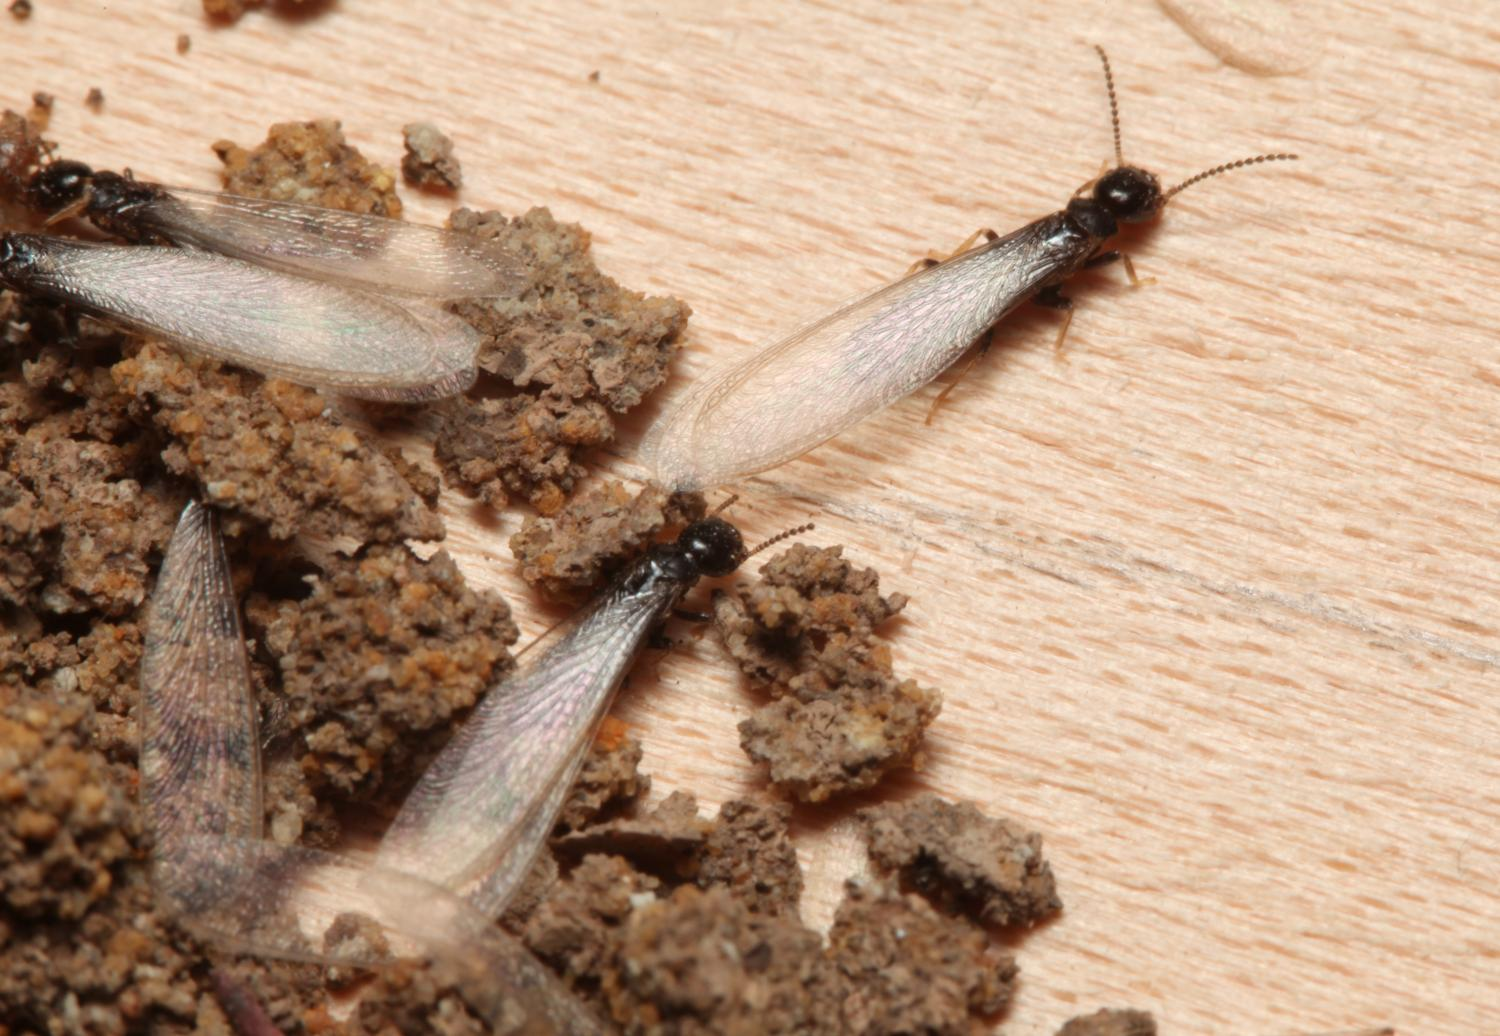 Beware Of Insect Pests That Can Reduce Your Homeu0027s Value, Says Bug Man.  Subterranean Termite Swarmers ...